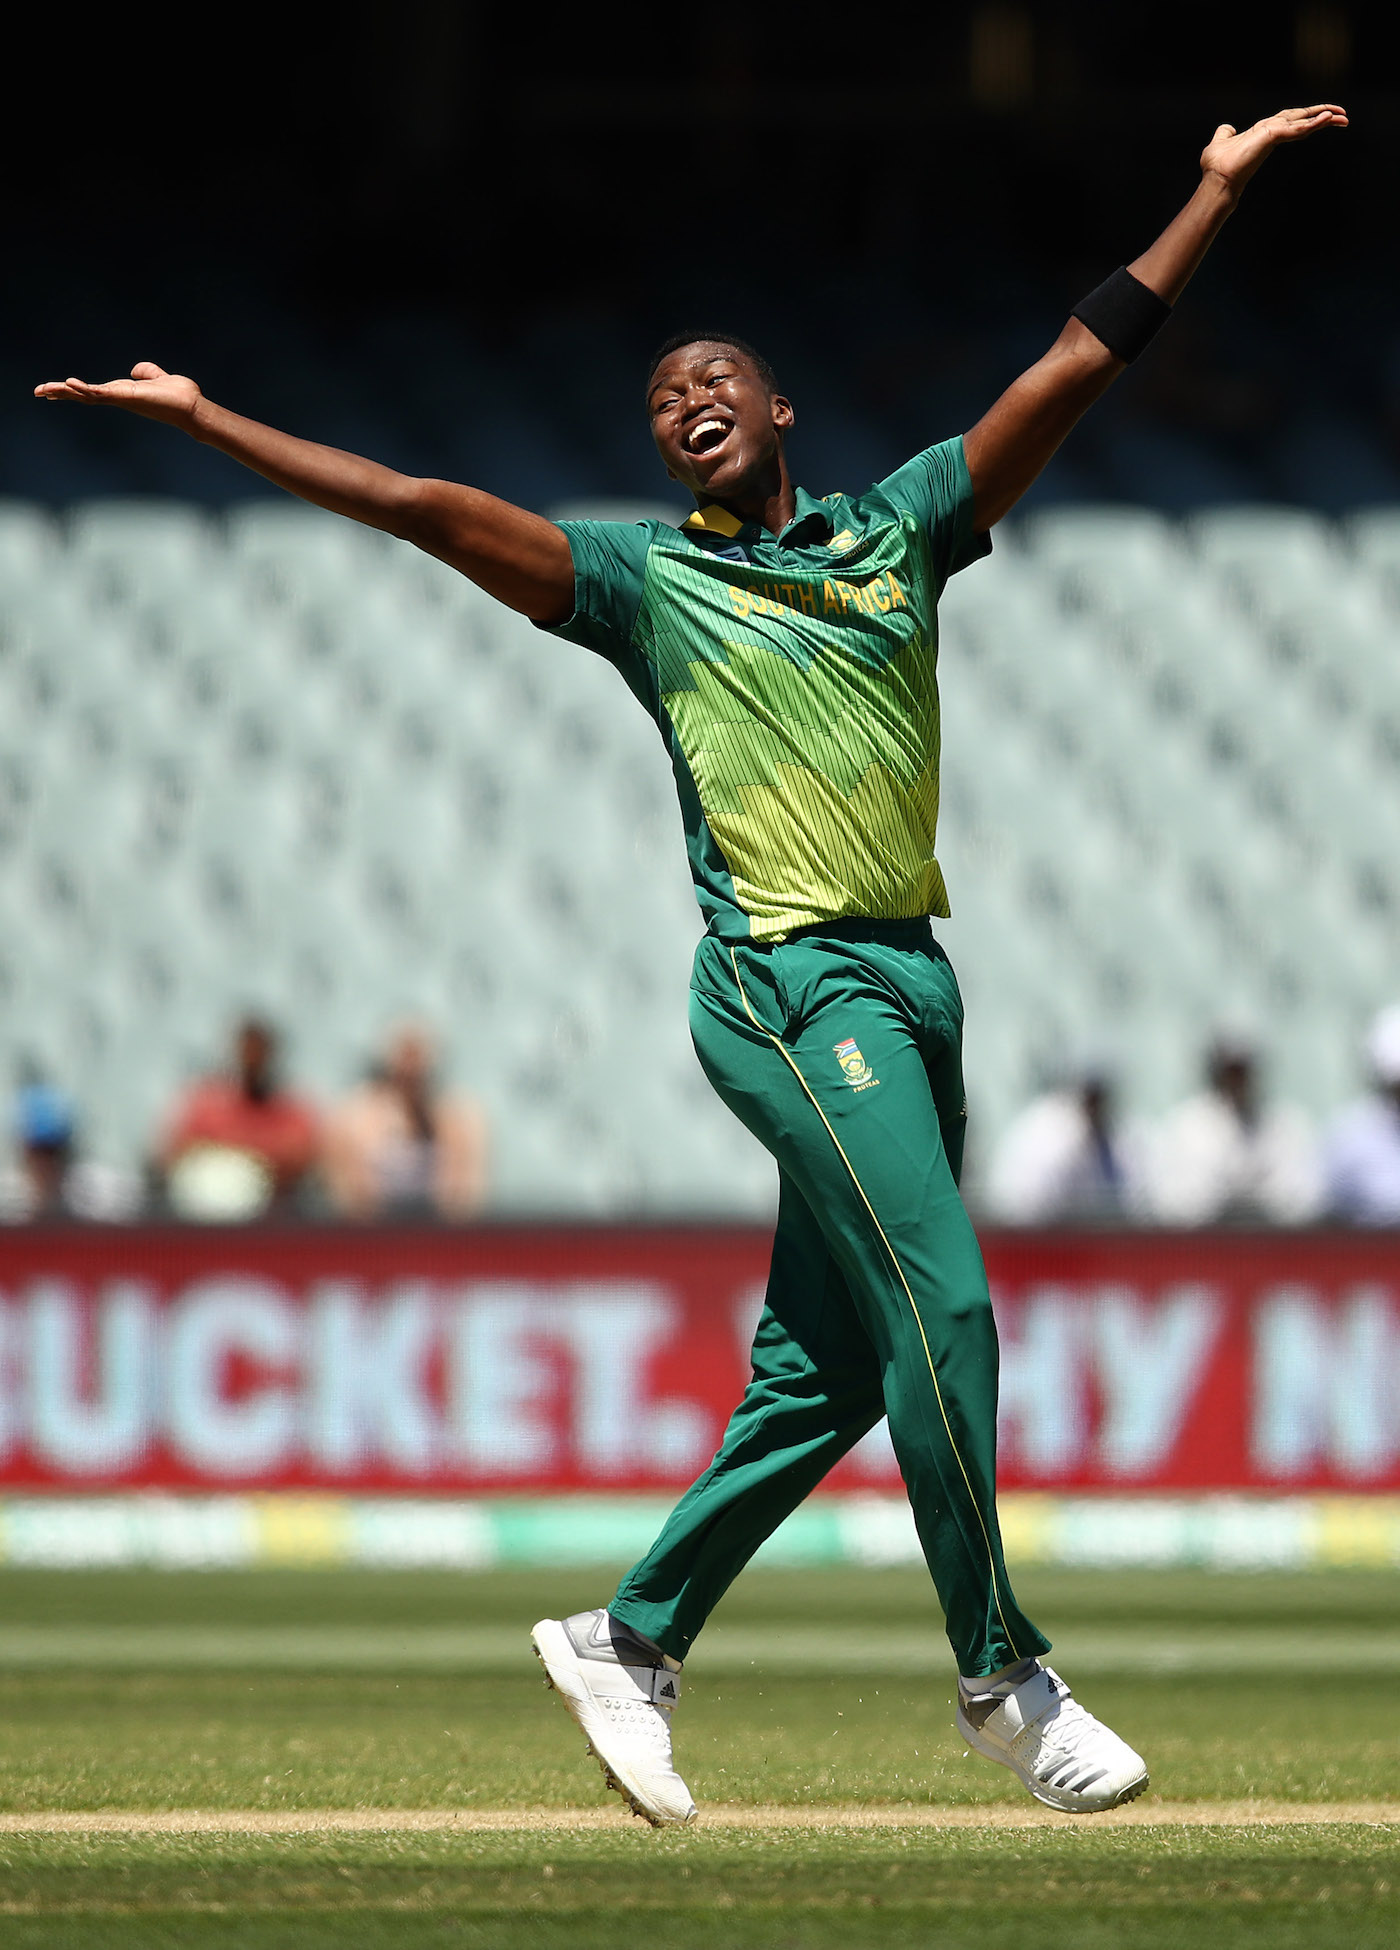 ICC World Cup 2019: Lungi Ngidi Declared Fit Ahead of the Tie Against New Zealand 1